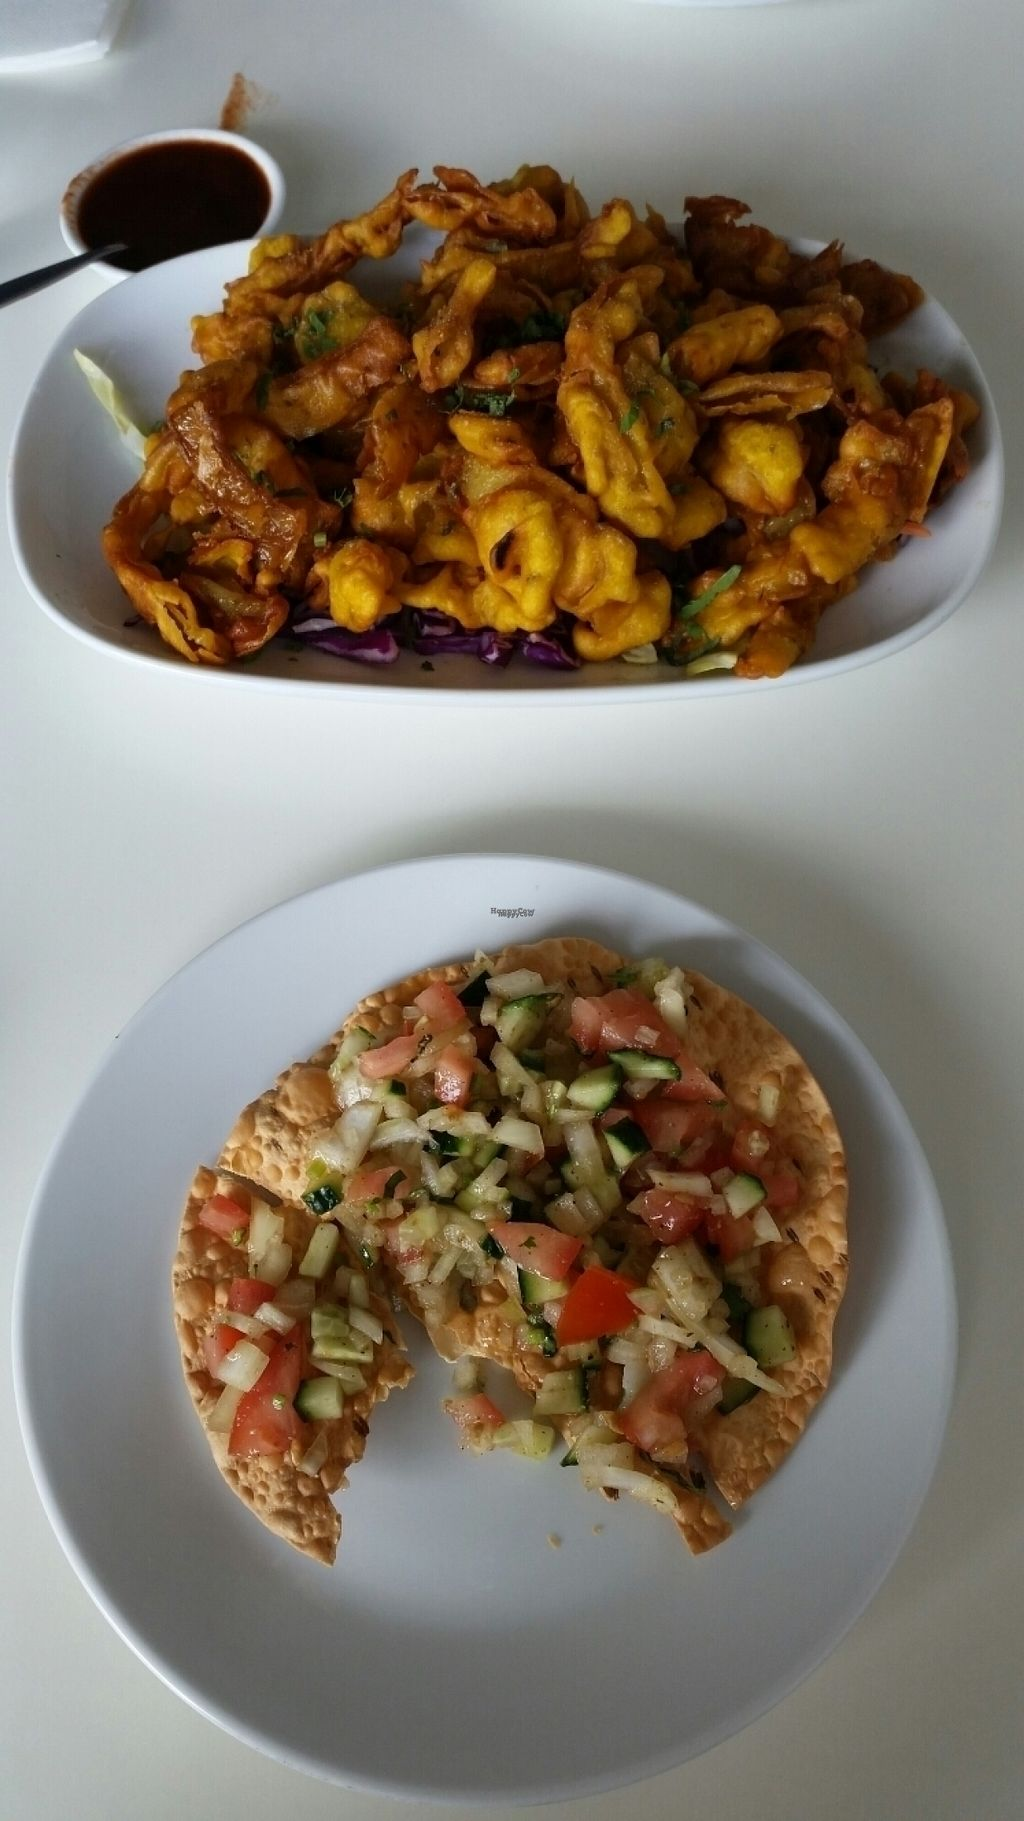 """Photo of Himalayan Kitchen  by <a href=""""/members/profile/AndyTheVWDude"""">AndyTheVWDude</a> <br/>Masala Papadam & Onion Bhaji <br/> October 30, 2016  - <a href='/contact/abuse/image/82156/185347'>Report</a>"""